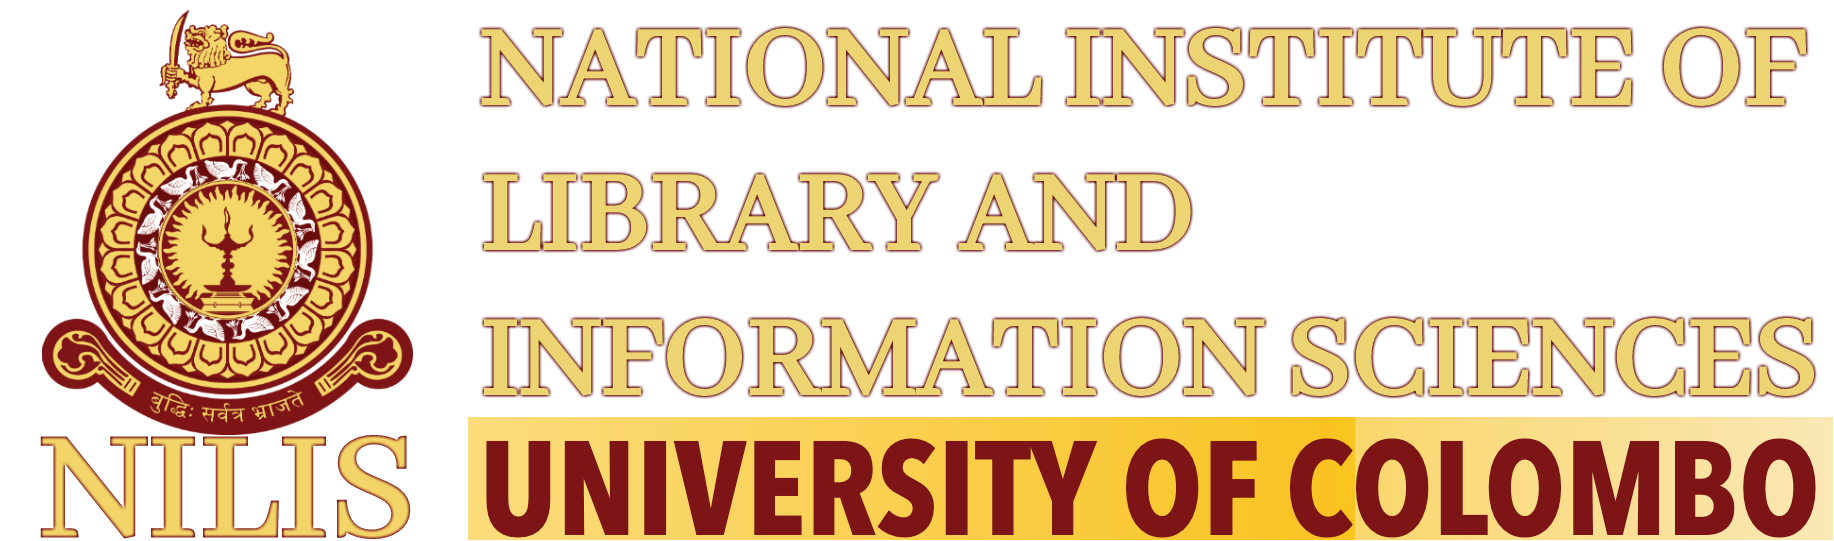 MPhil/PhD Programme | NILIS, University of Colombo, Sri Lanka